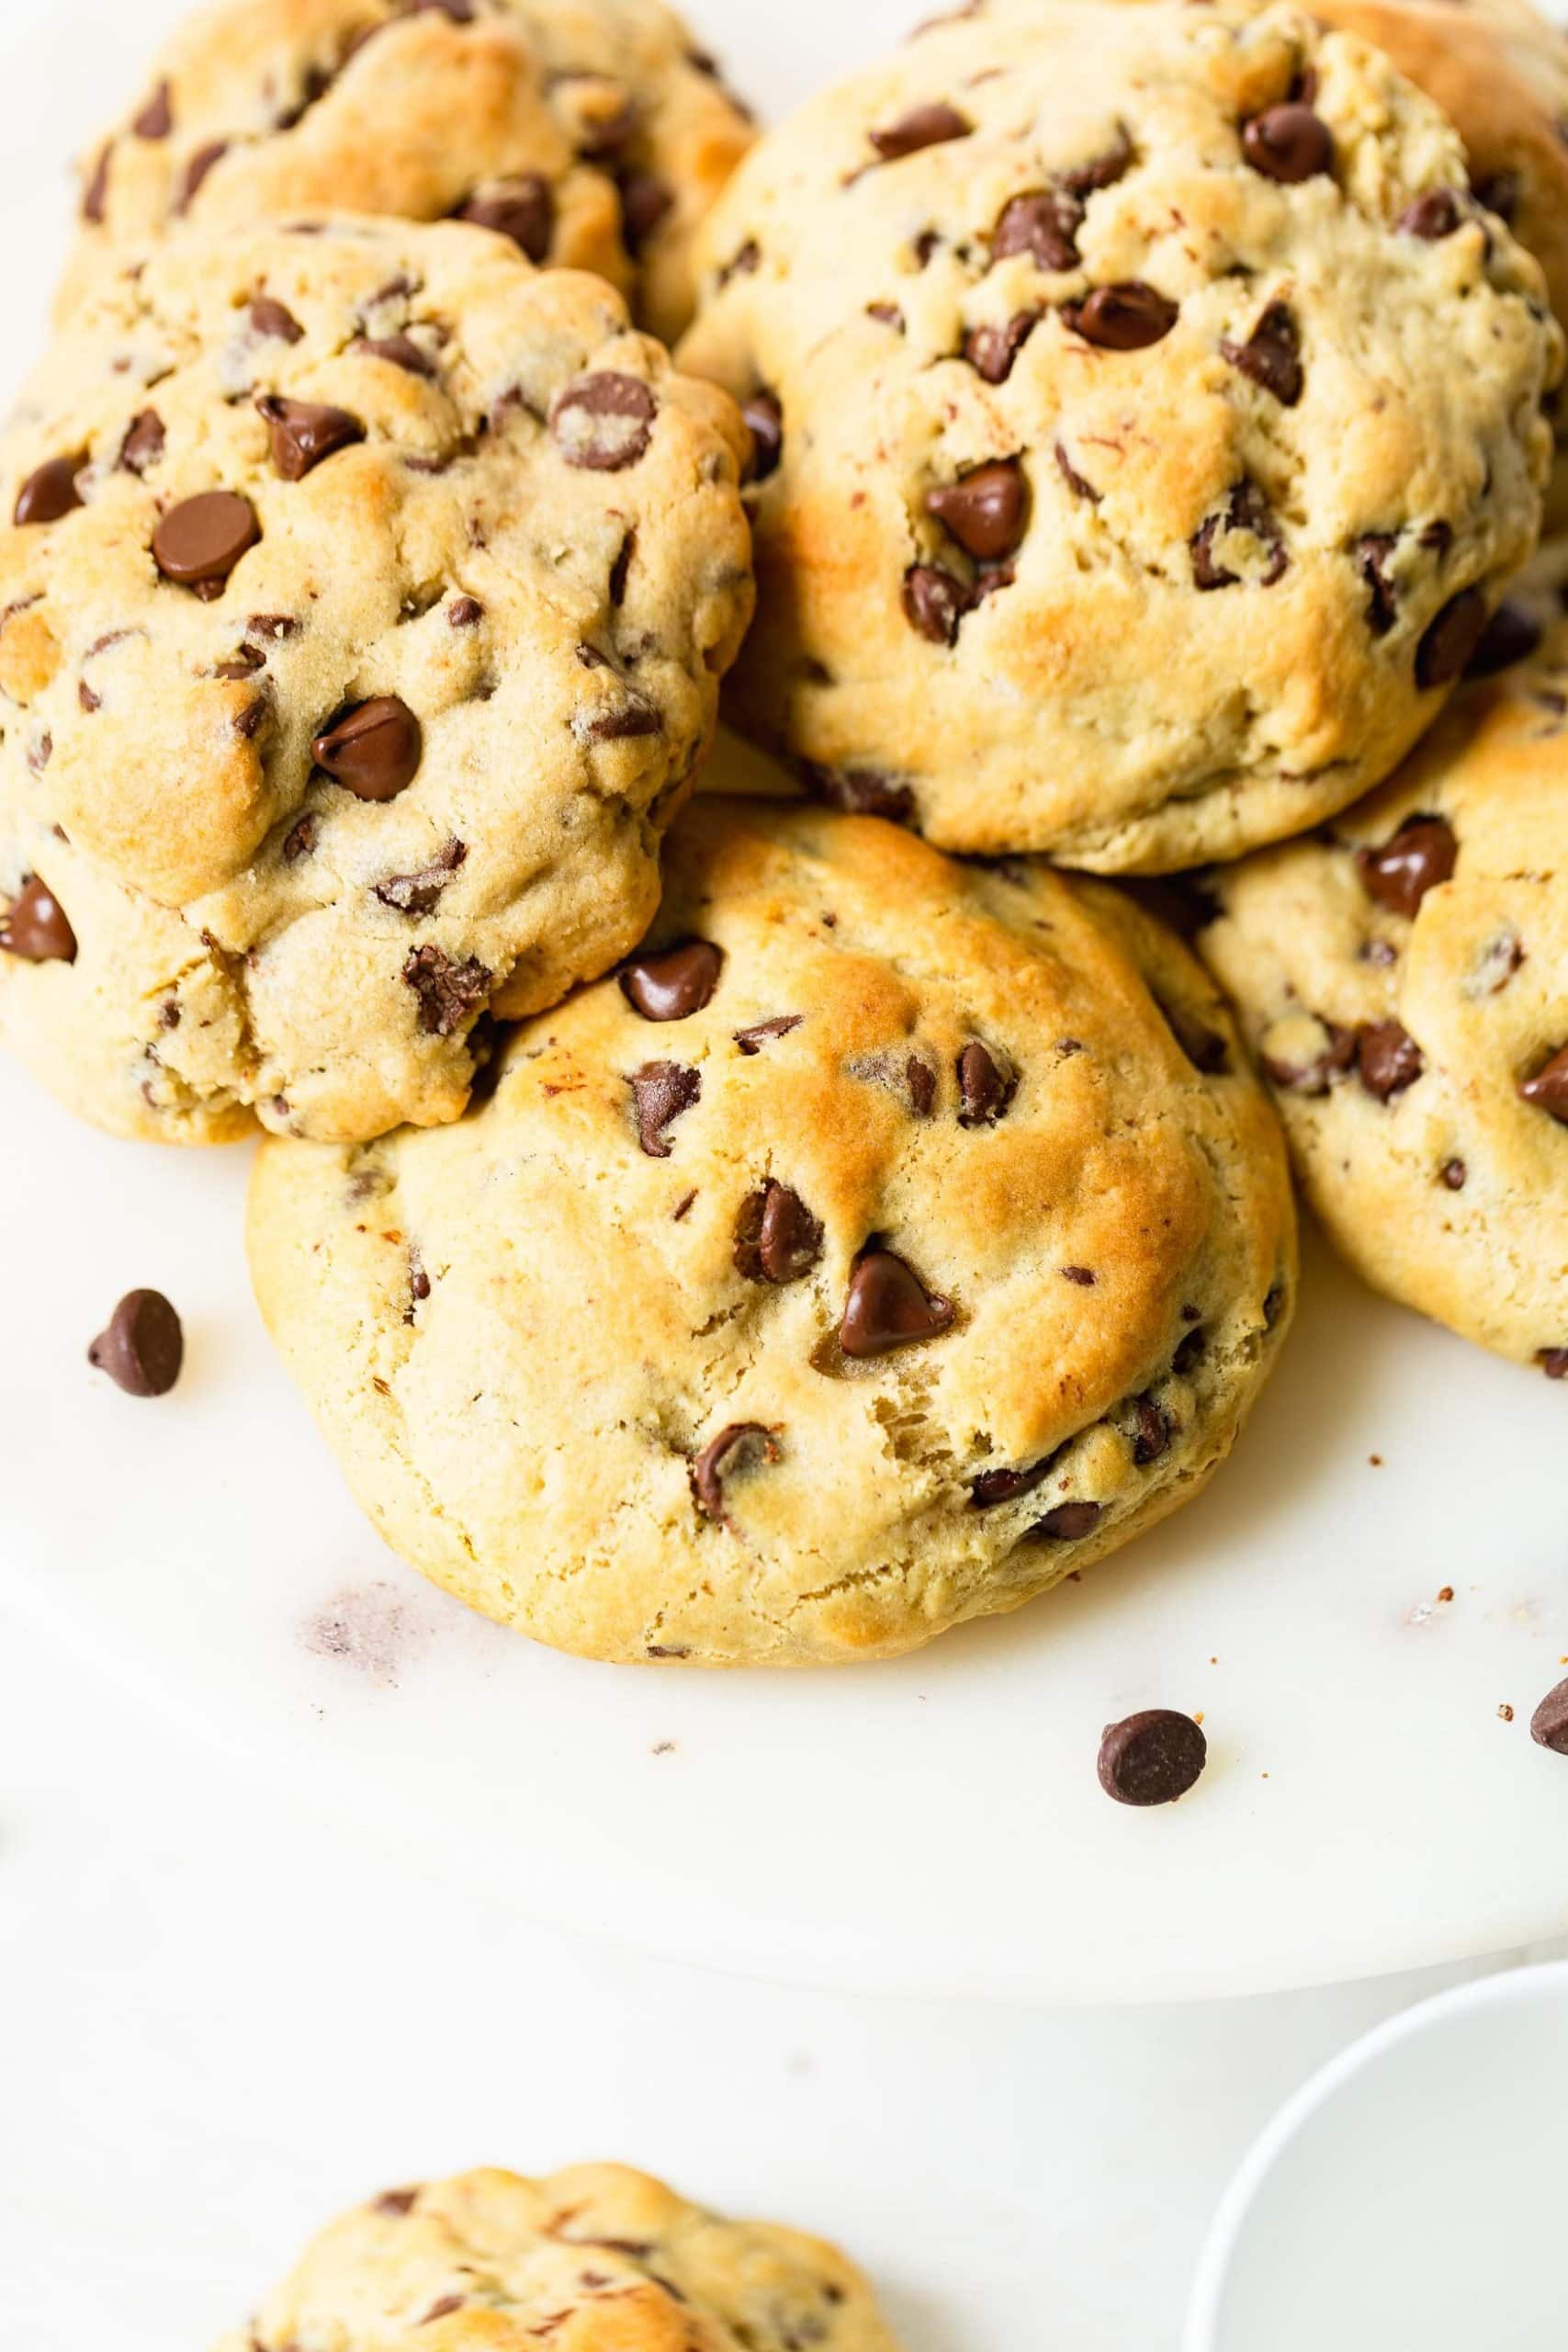 a photo of a pile of thick golden chocolate chip cookies.